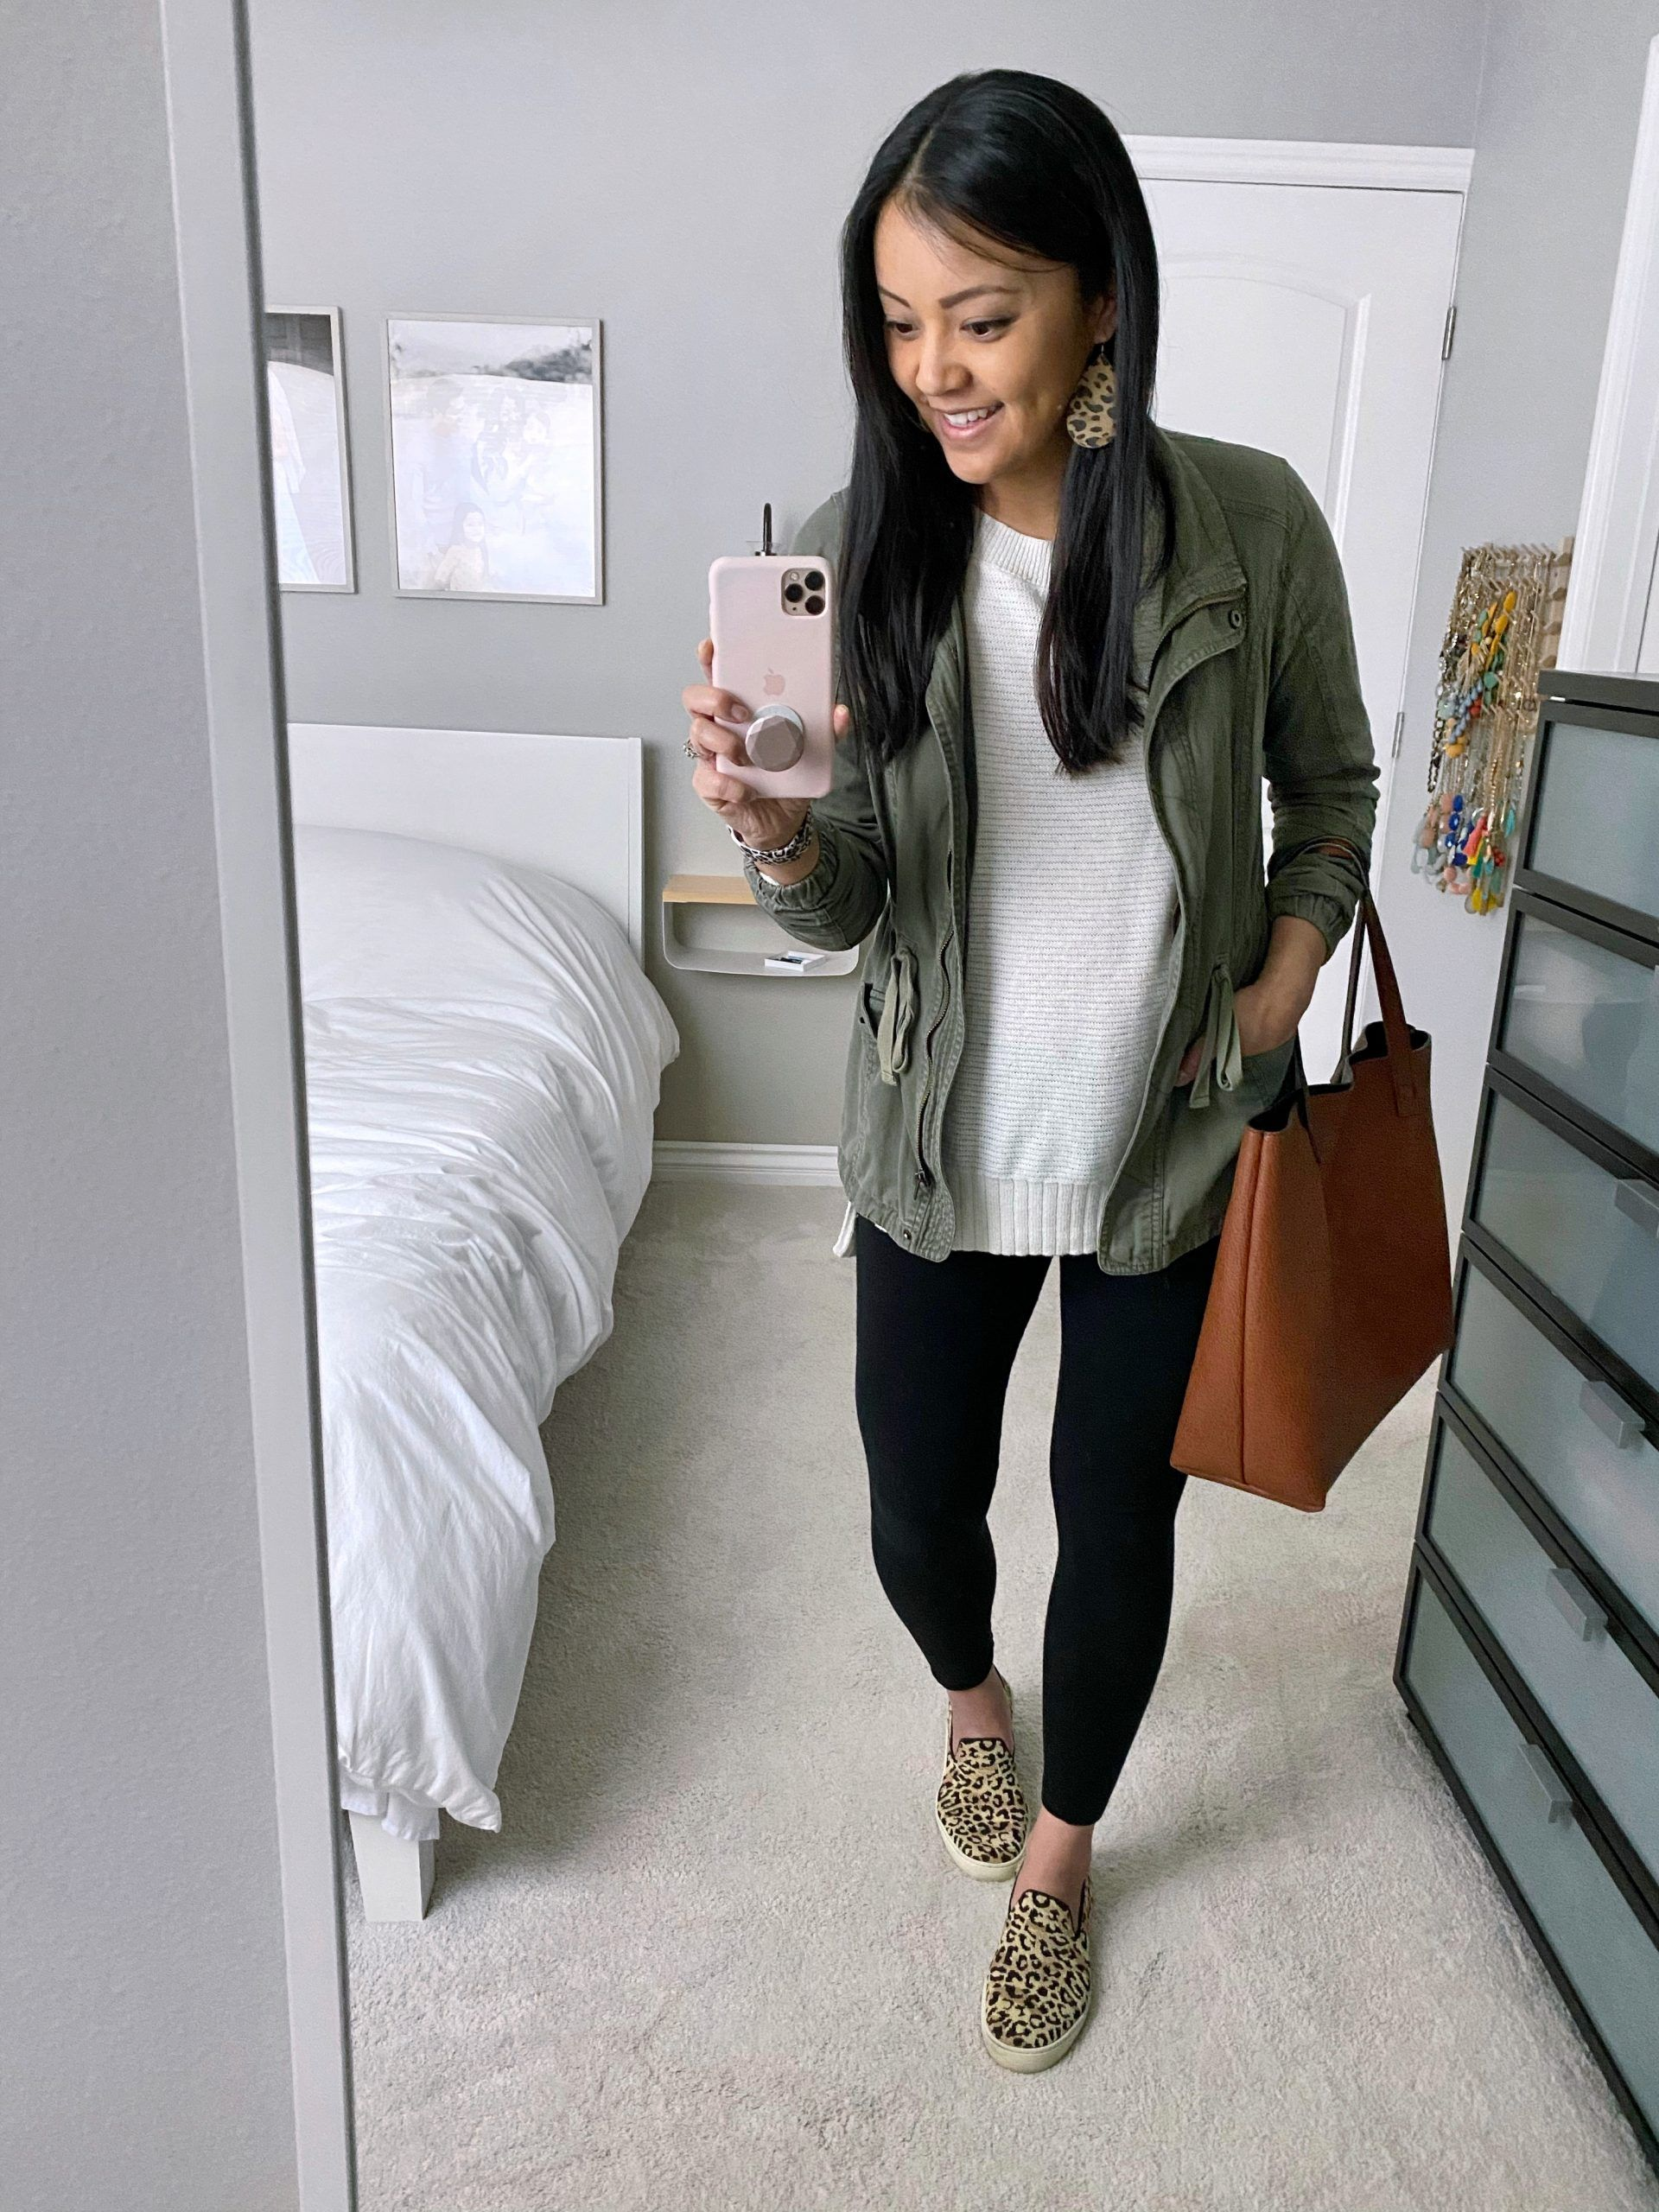 3 Outfits With Leggings to Wear at Home From the Early Mini Spring Capsule Wardrobe